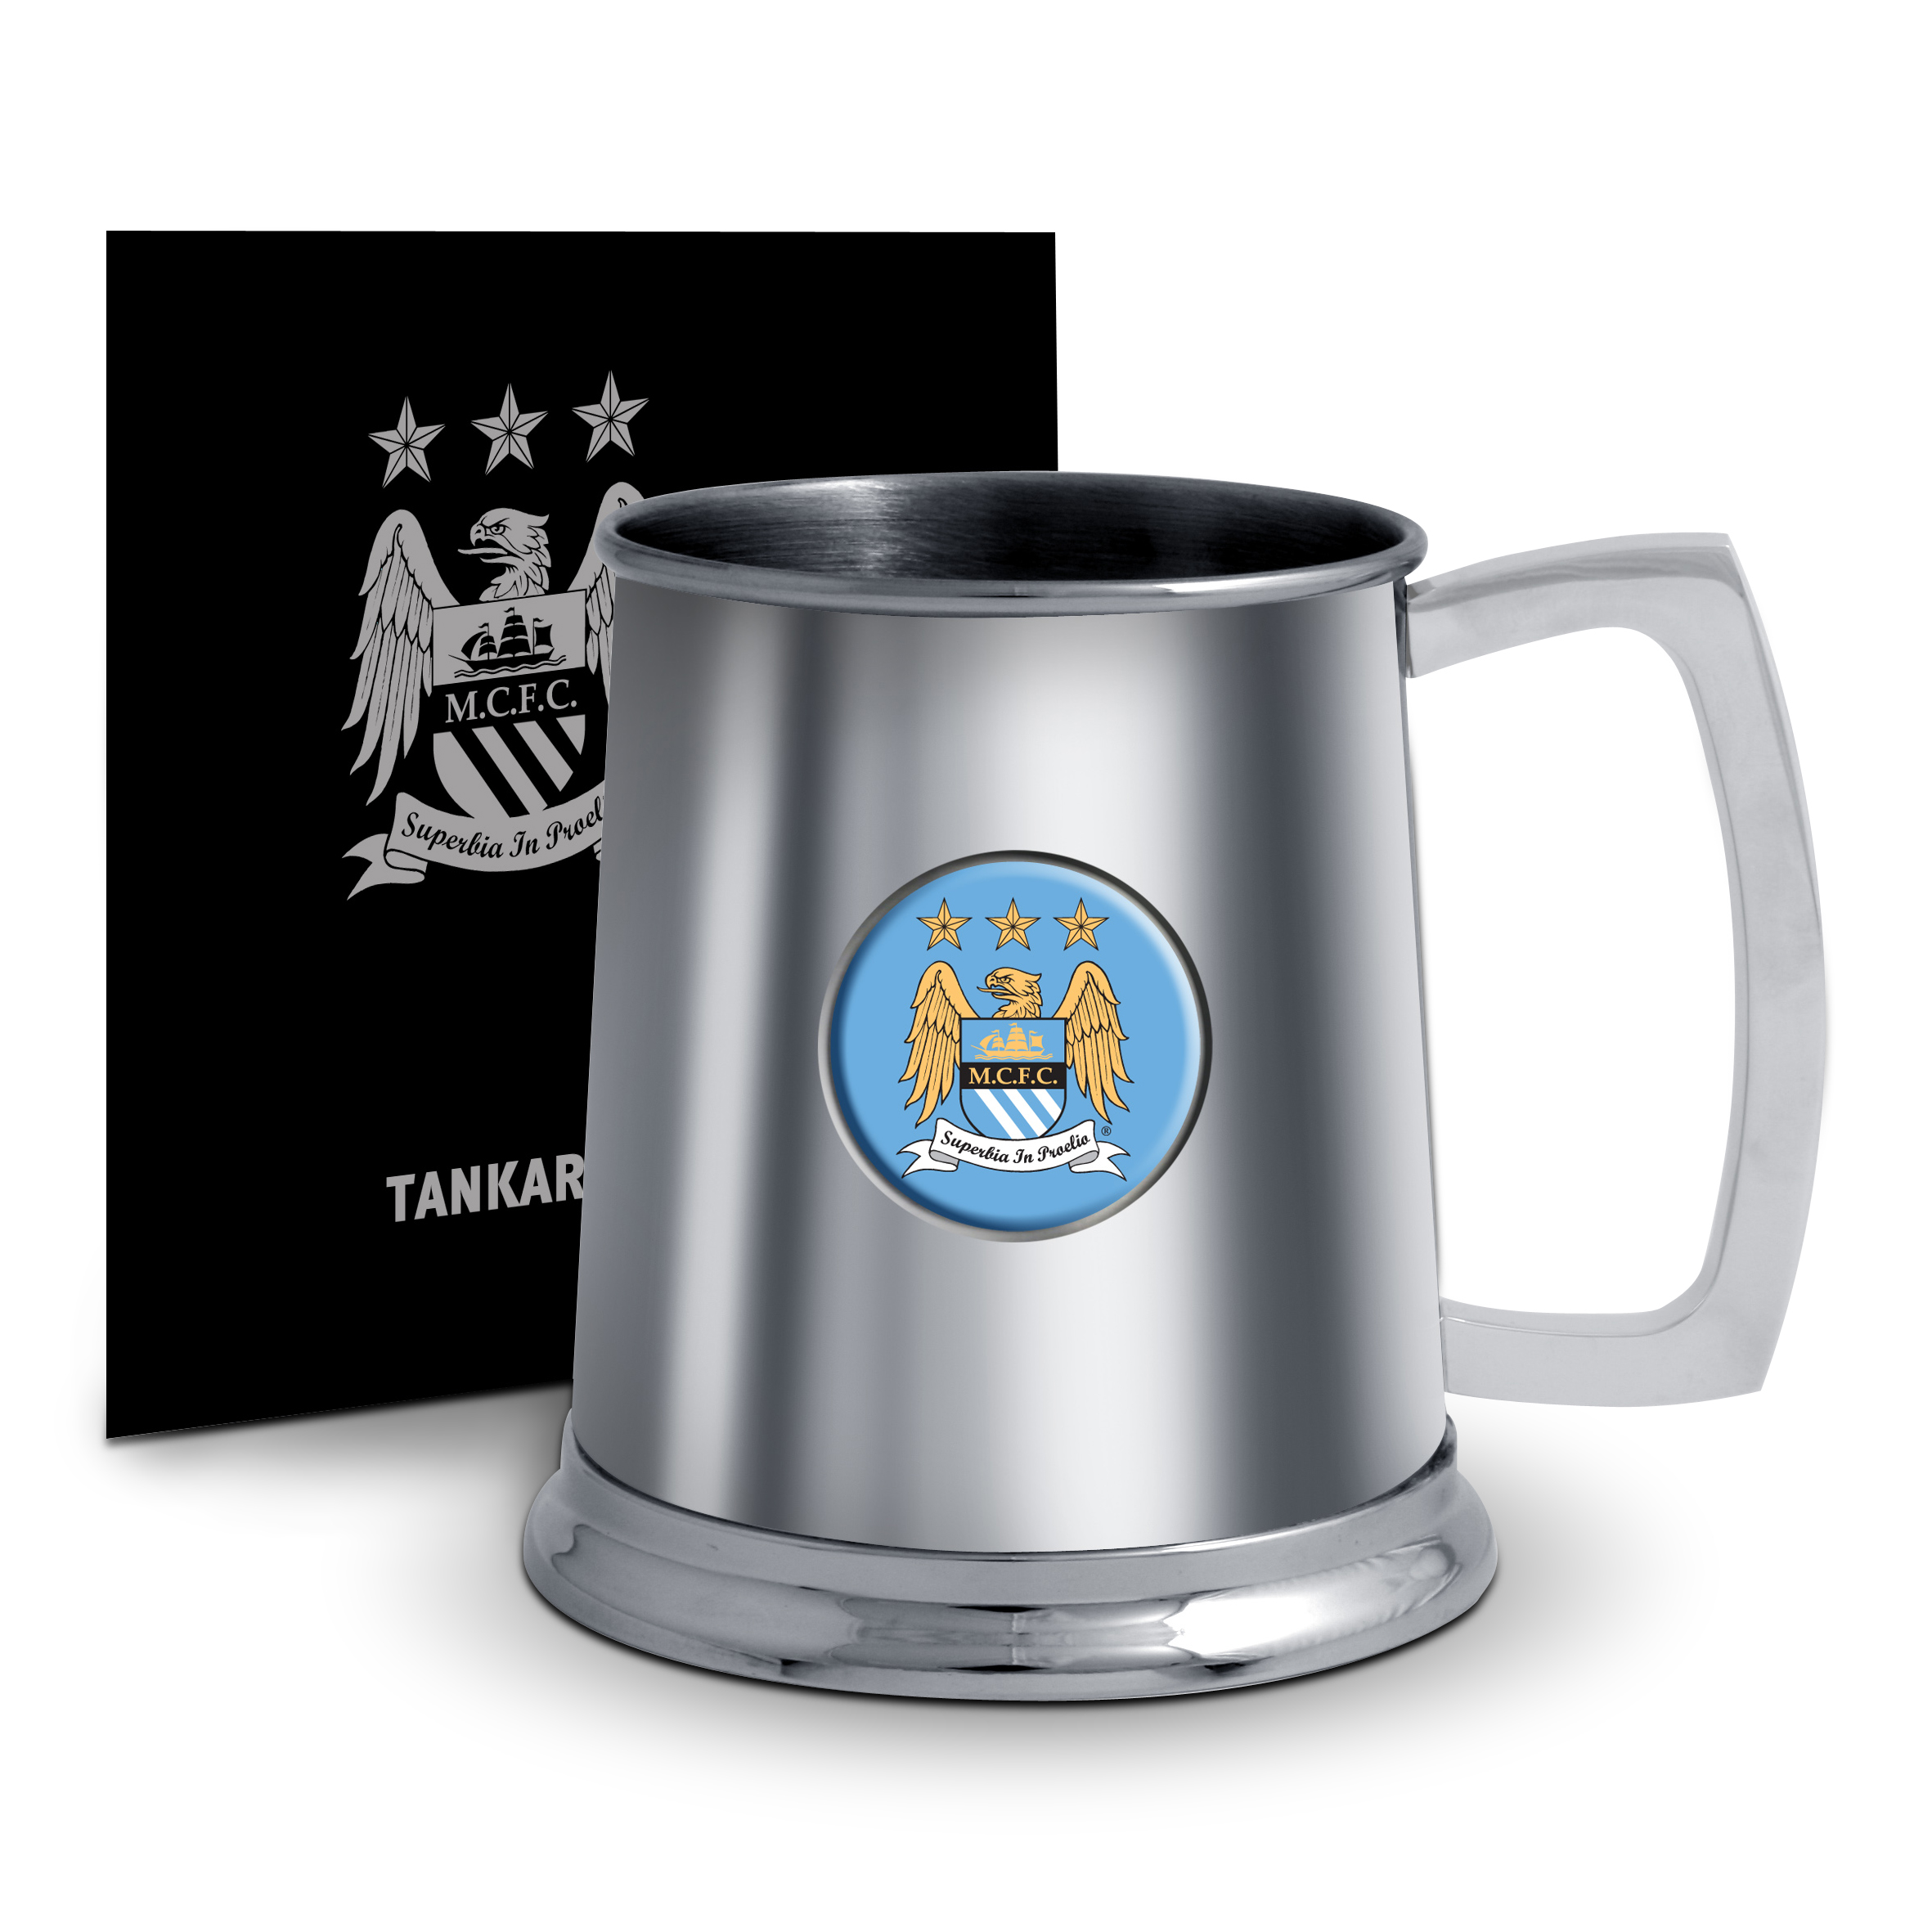 Manchester City Tankard - Stainless Steel